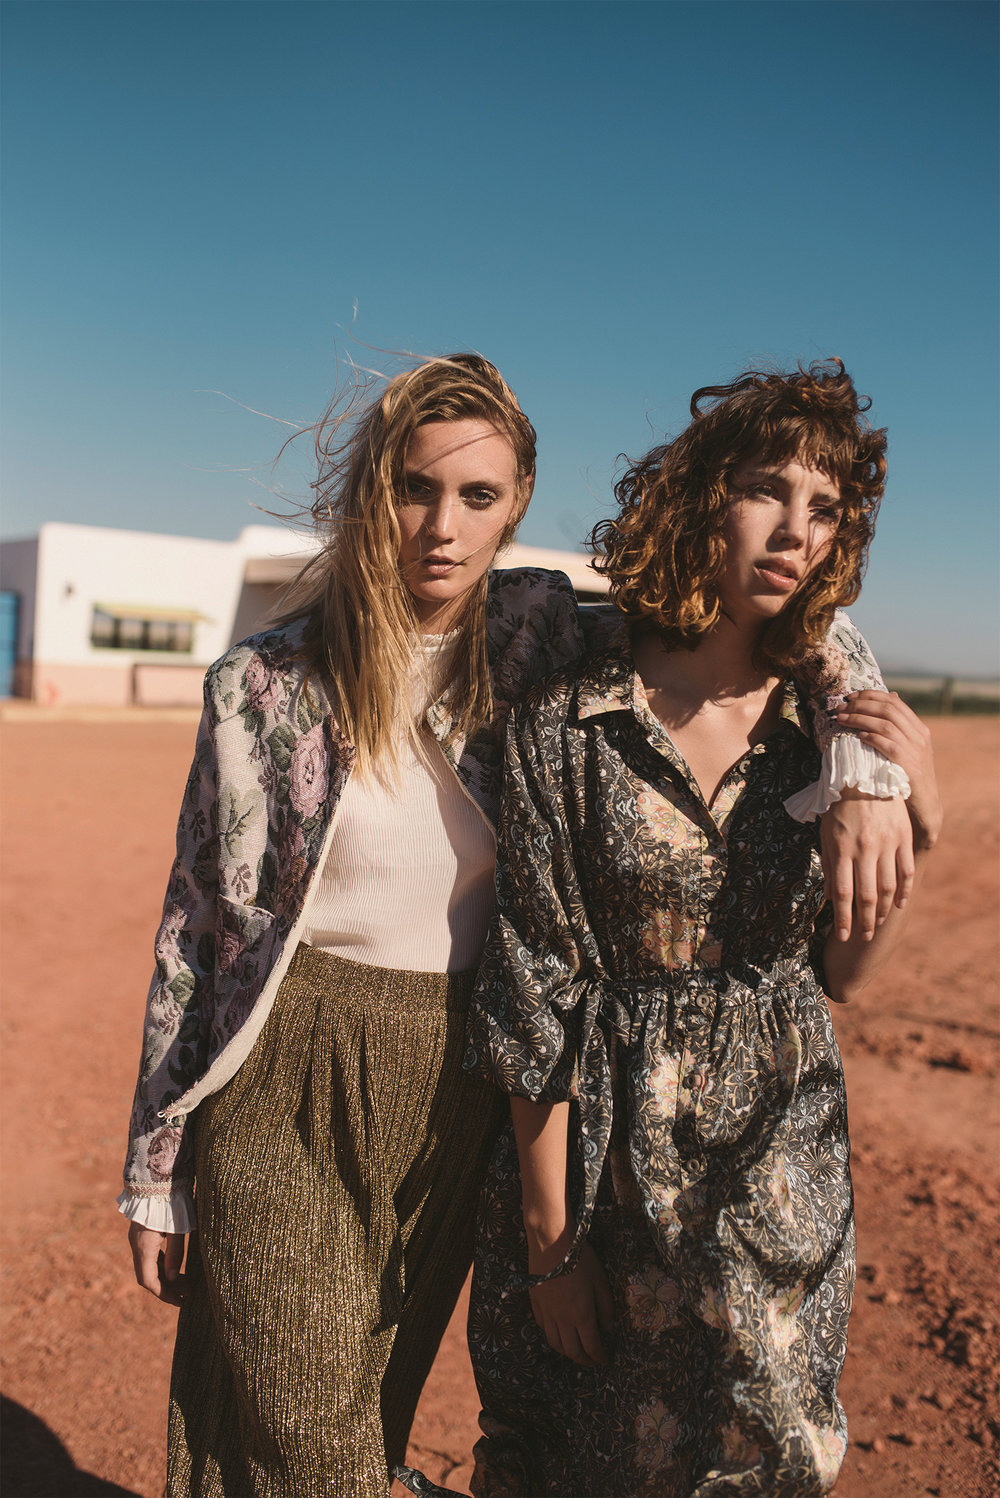 Emma (left) wears: shirt, H&M; jacket, Babette; trousers, stylist's own | Francesca (right) wears: dress, Amanda Laird Cherry at The Space